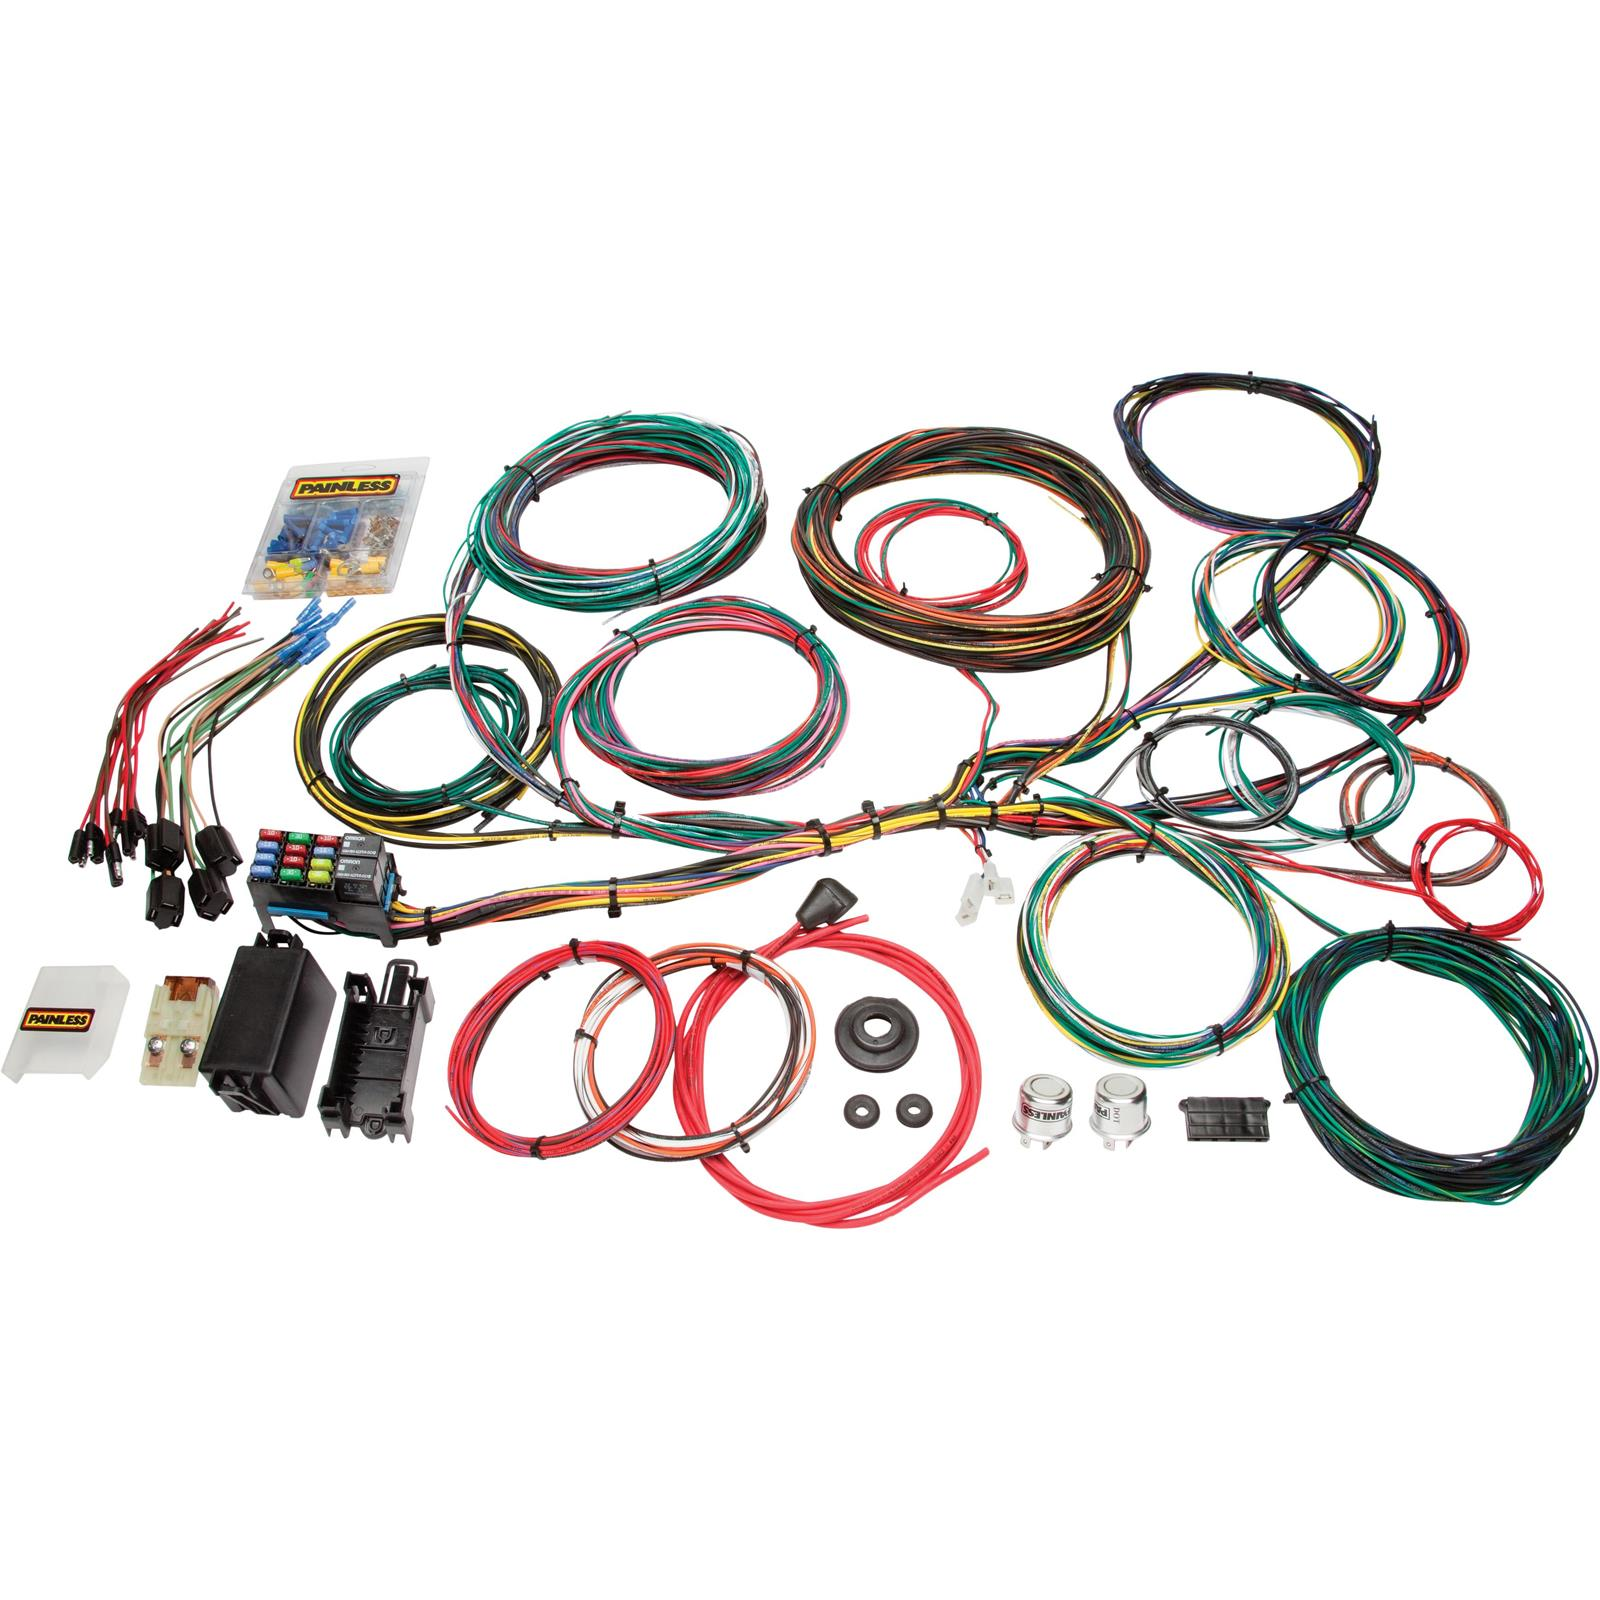 [ZHKZ_3066]  Painless 10123 1966-1976 Ford Muscle Car 21 Circuit Wiring Harness | 1966 Ford Falcon Wiring |  | Speedway Motors